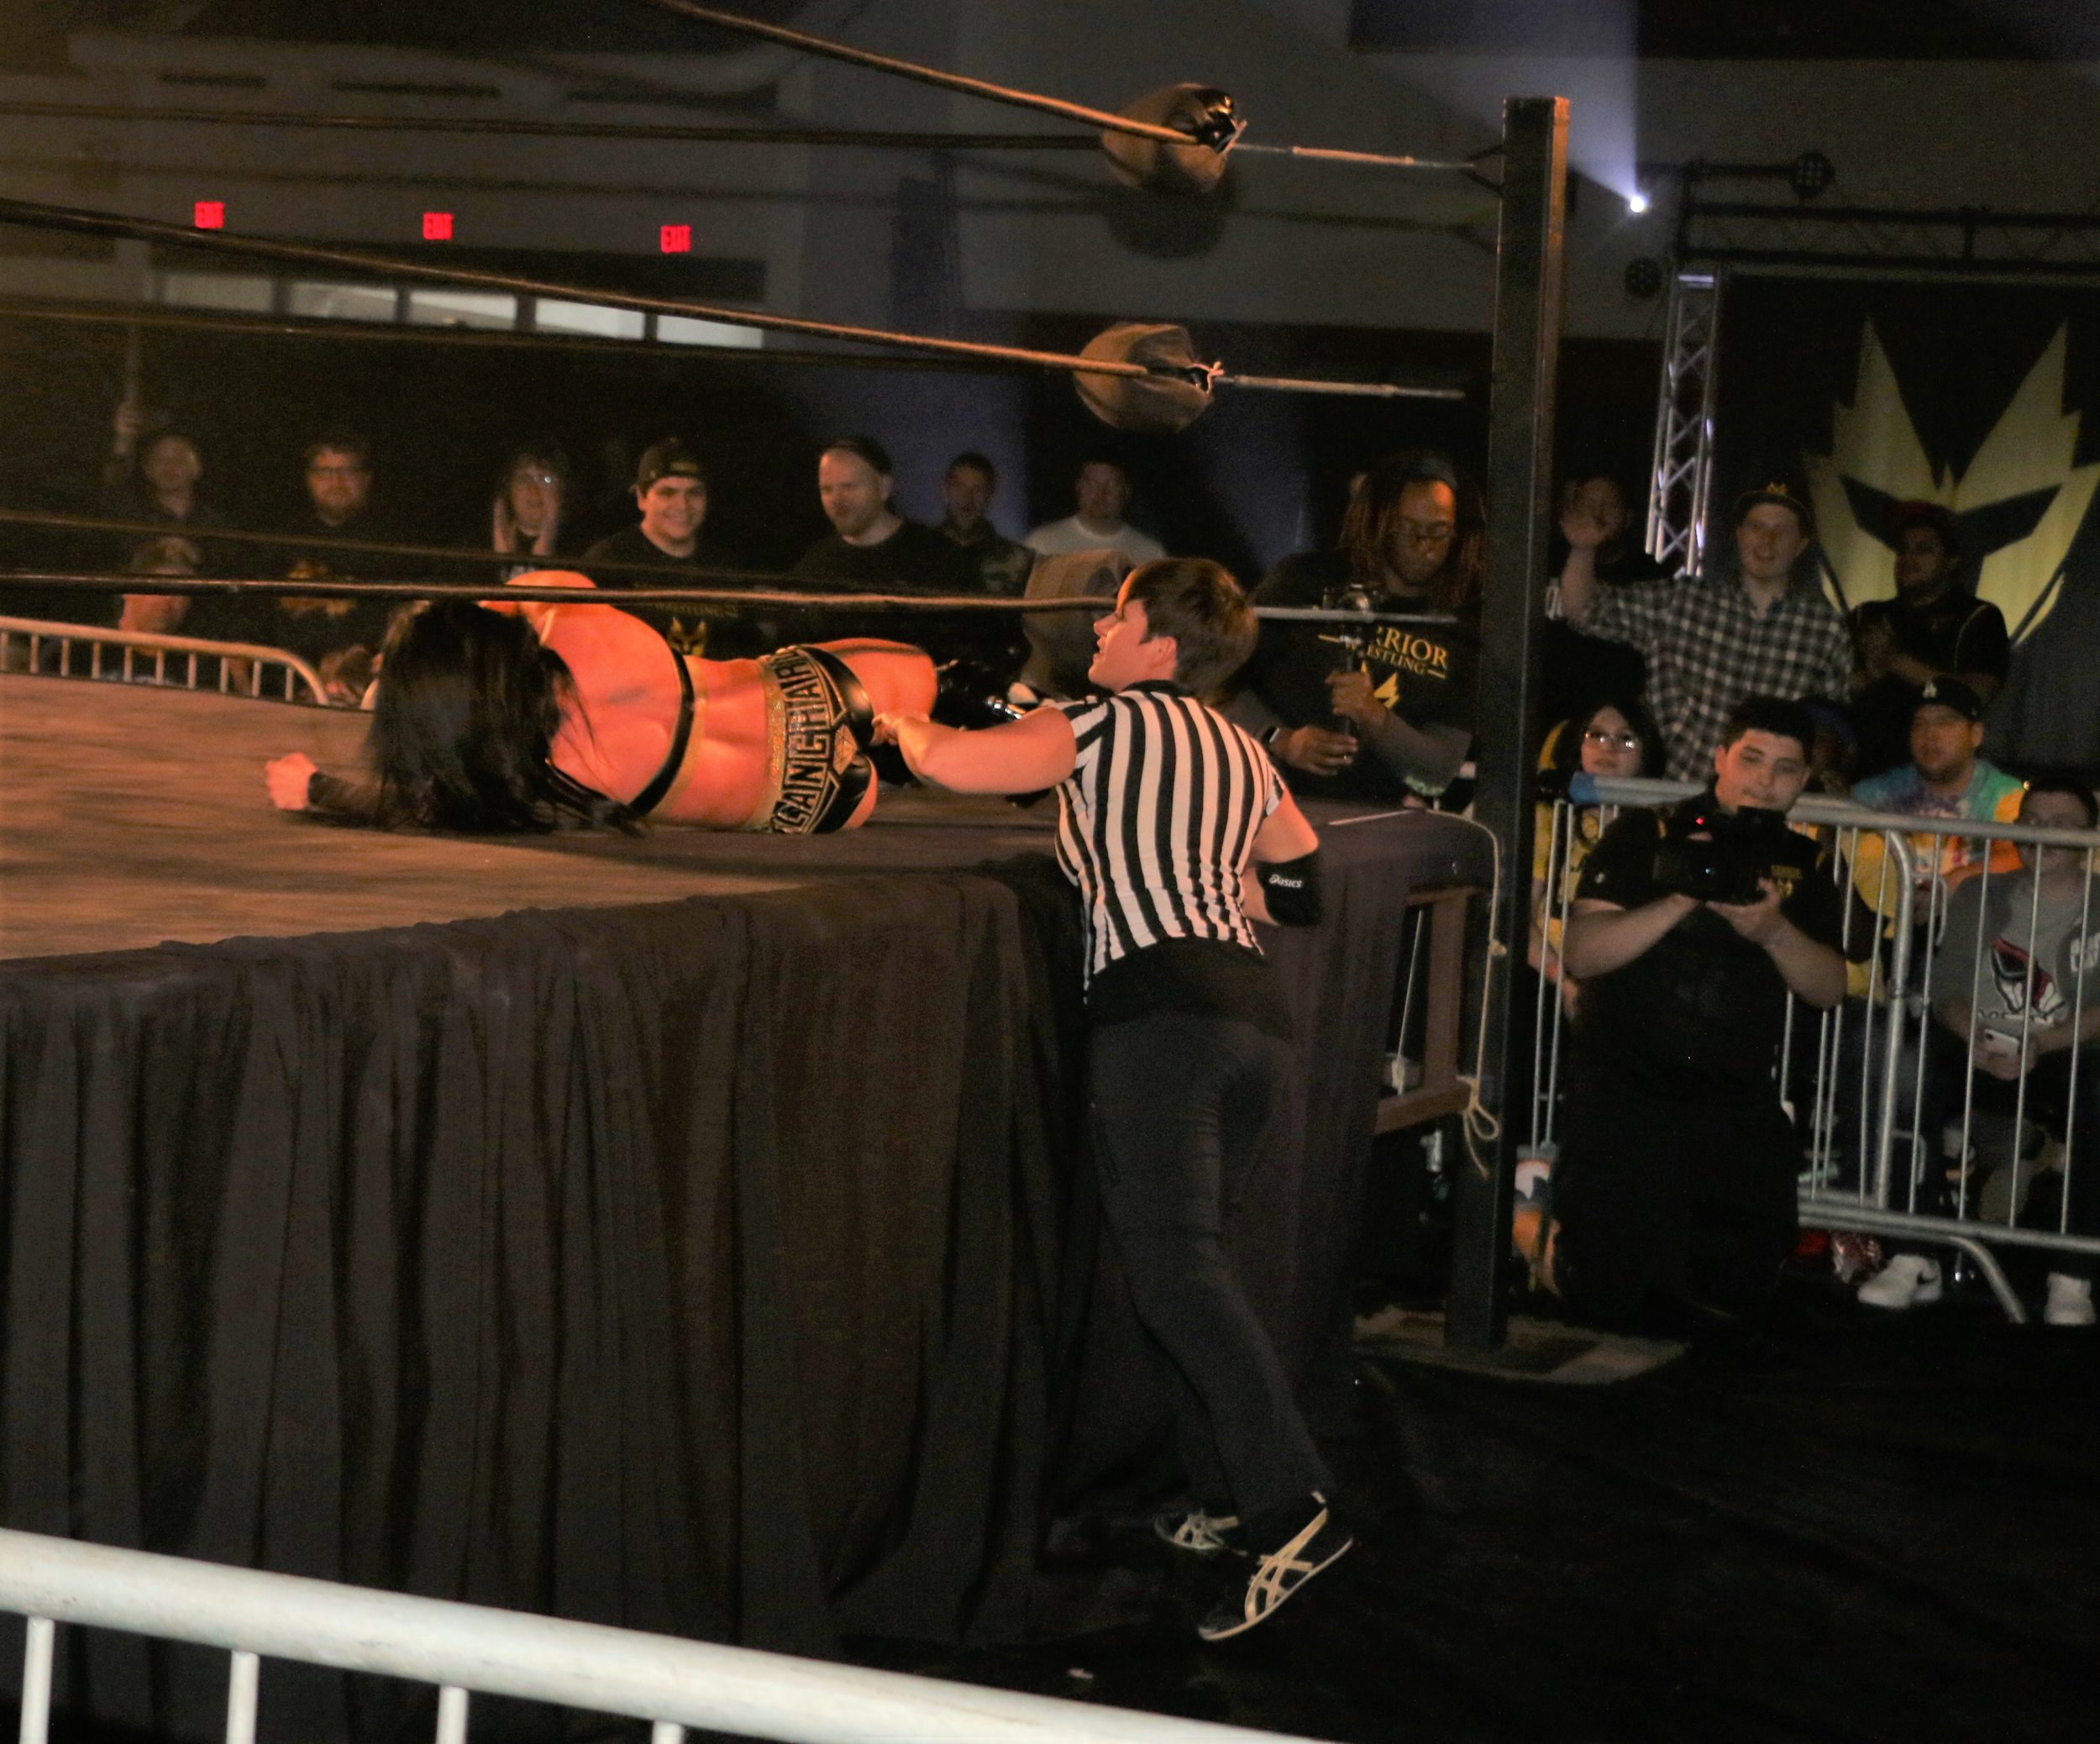 Special referee Molly Holly rolls Tessa Blanchard back into the ring.